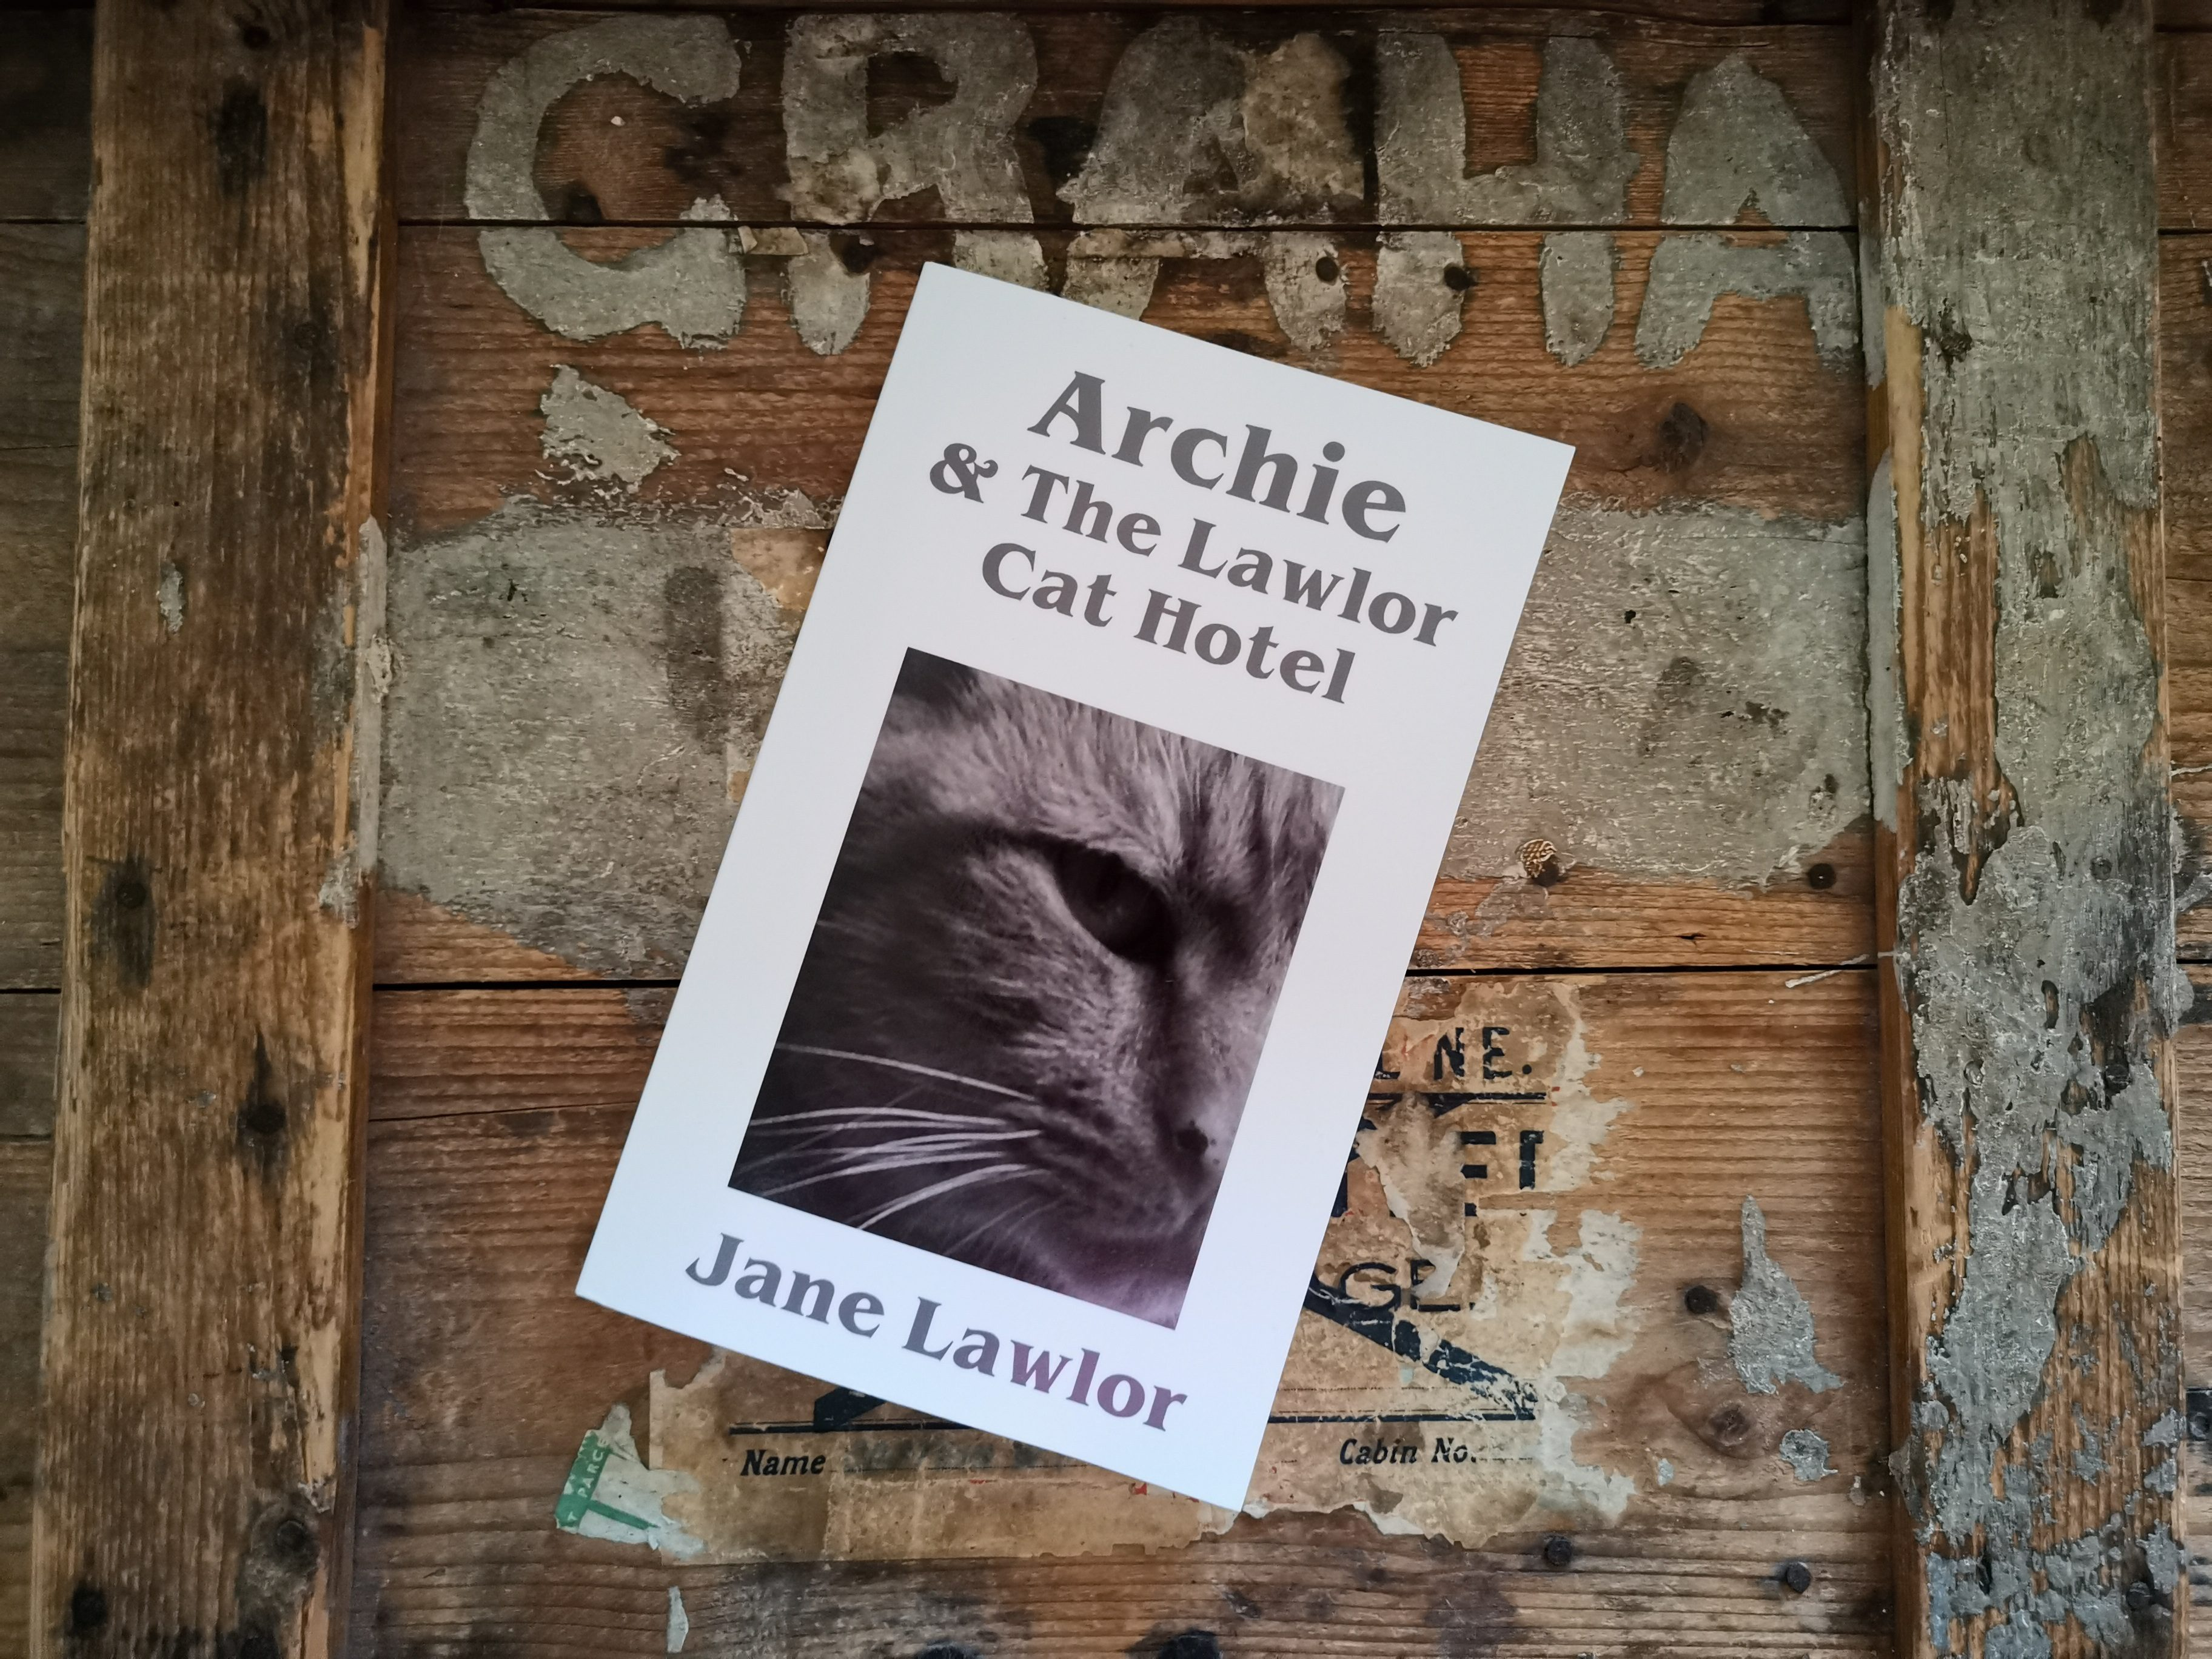 Archie & The Lawlor Cat Hotel book